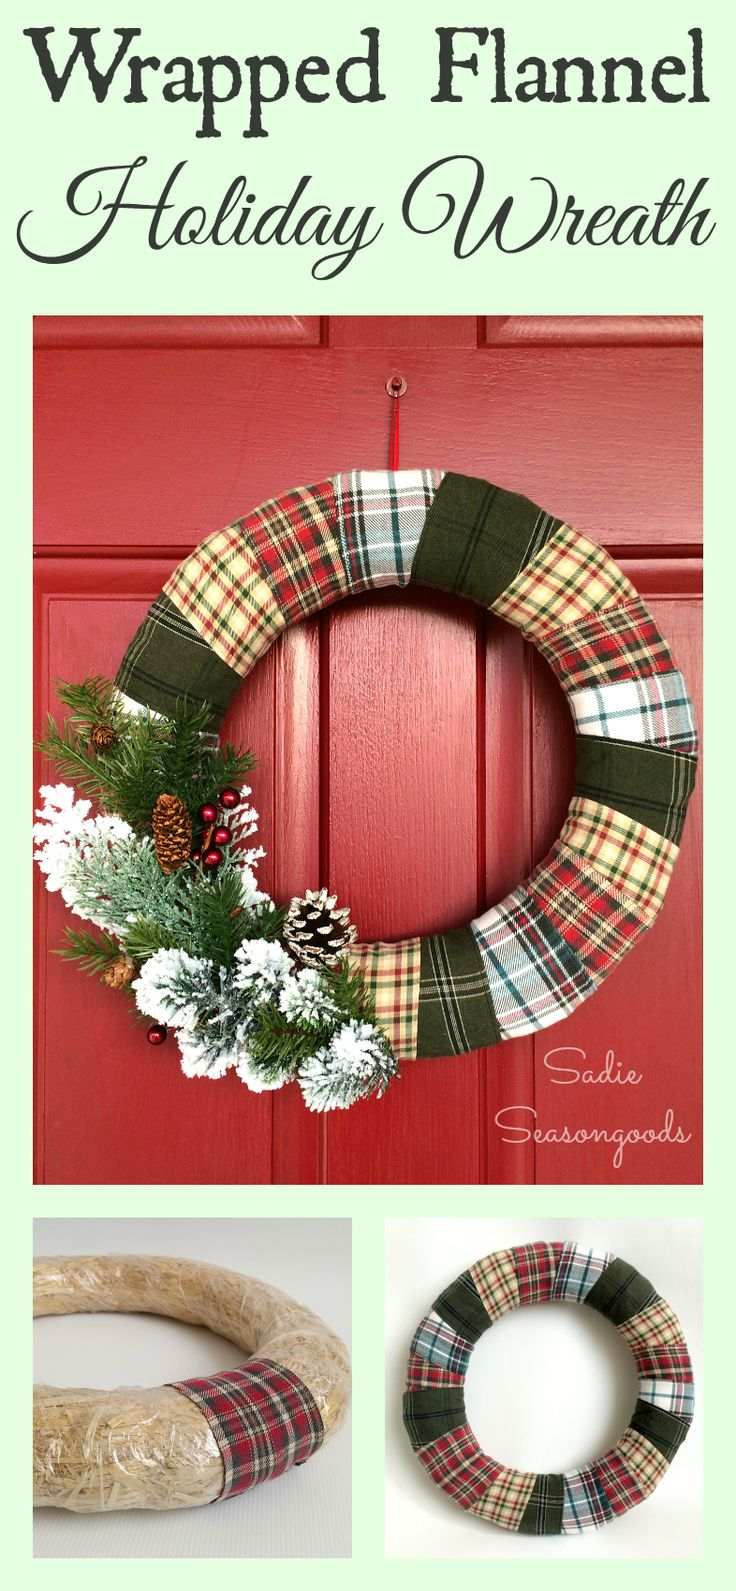 I've always wanted a wreath that was Christmas-y AND winter-y so that it could stay put through February, and now I have one! Flannel scraps from thrift store flannel shirts in holiday colors make for the perfect mixed plaid wreath. Add some sprigs of greenery, pine cones, and red berries, and you have a gorgeous piece of door decor! Love this thrifted Christmas upcycle / repurpose project from #SadieSeasongoods . #SoMe2